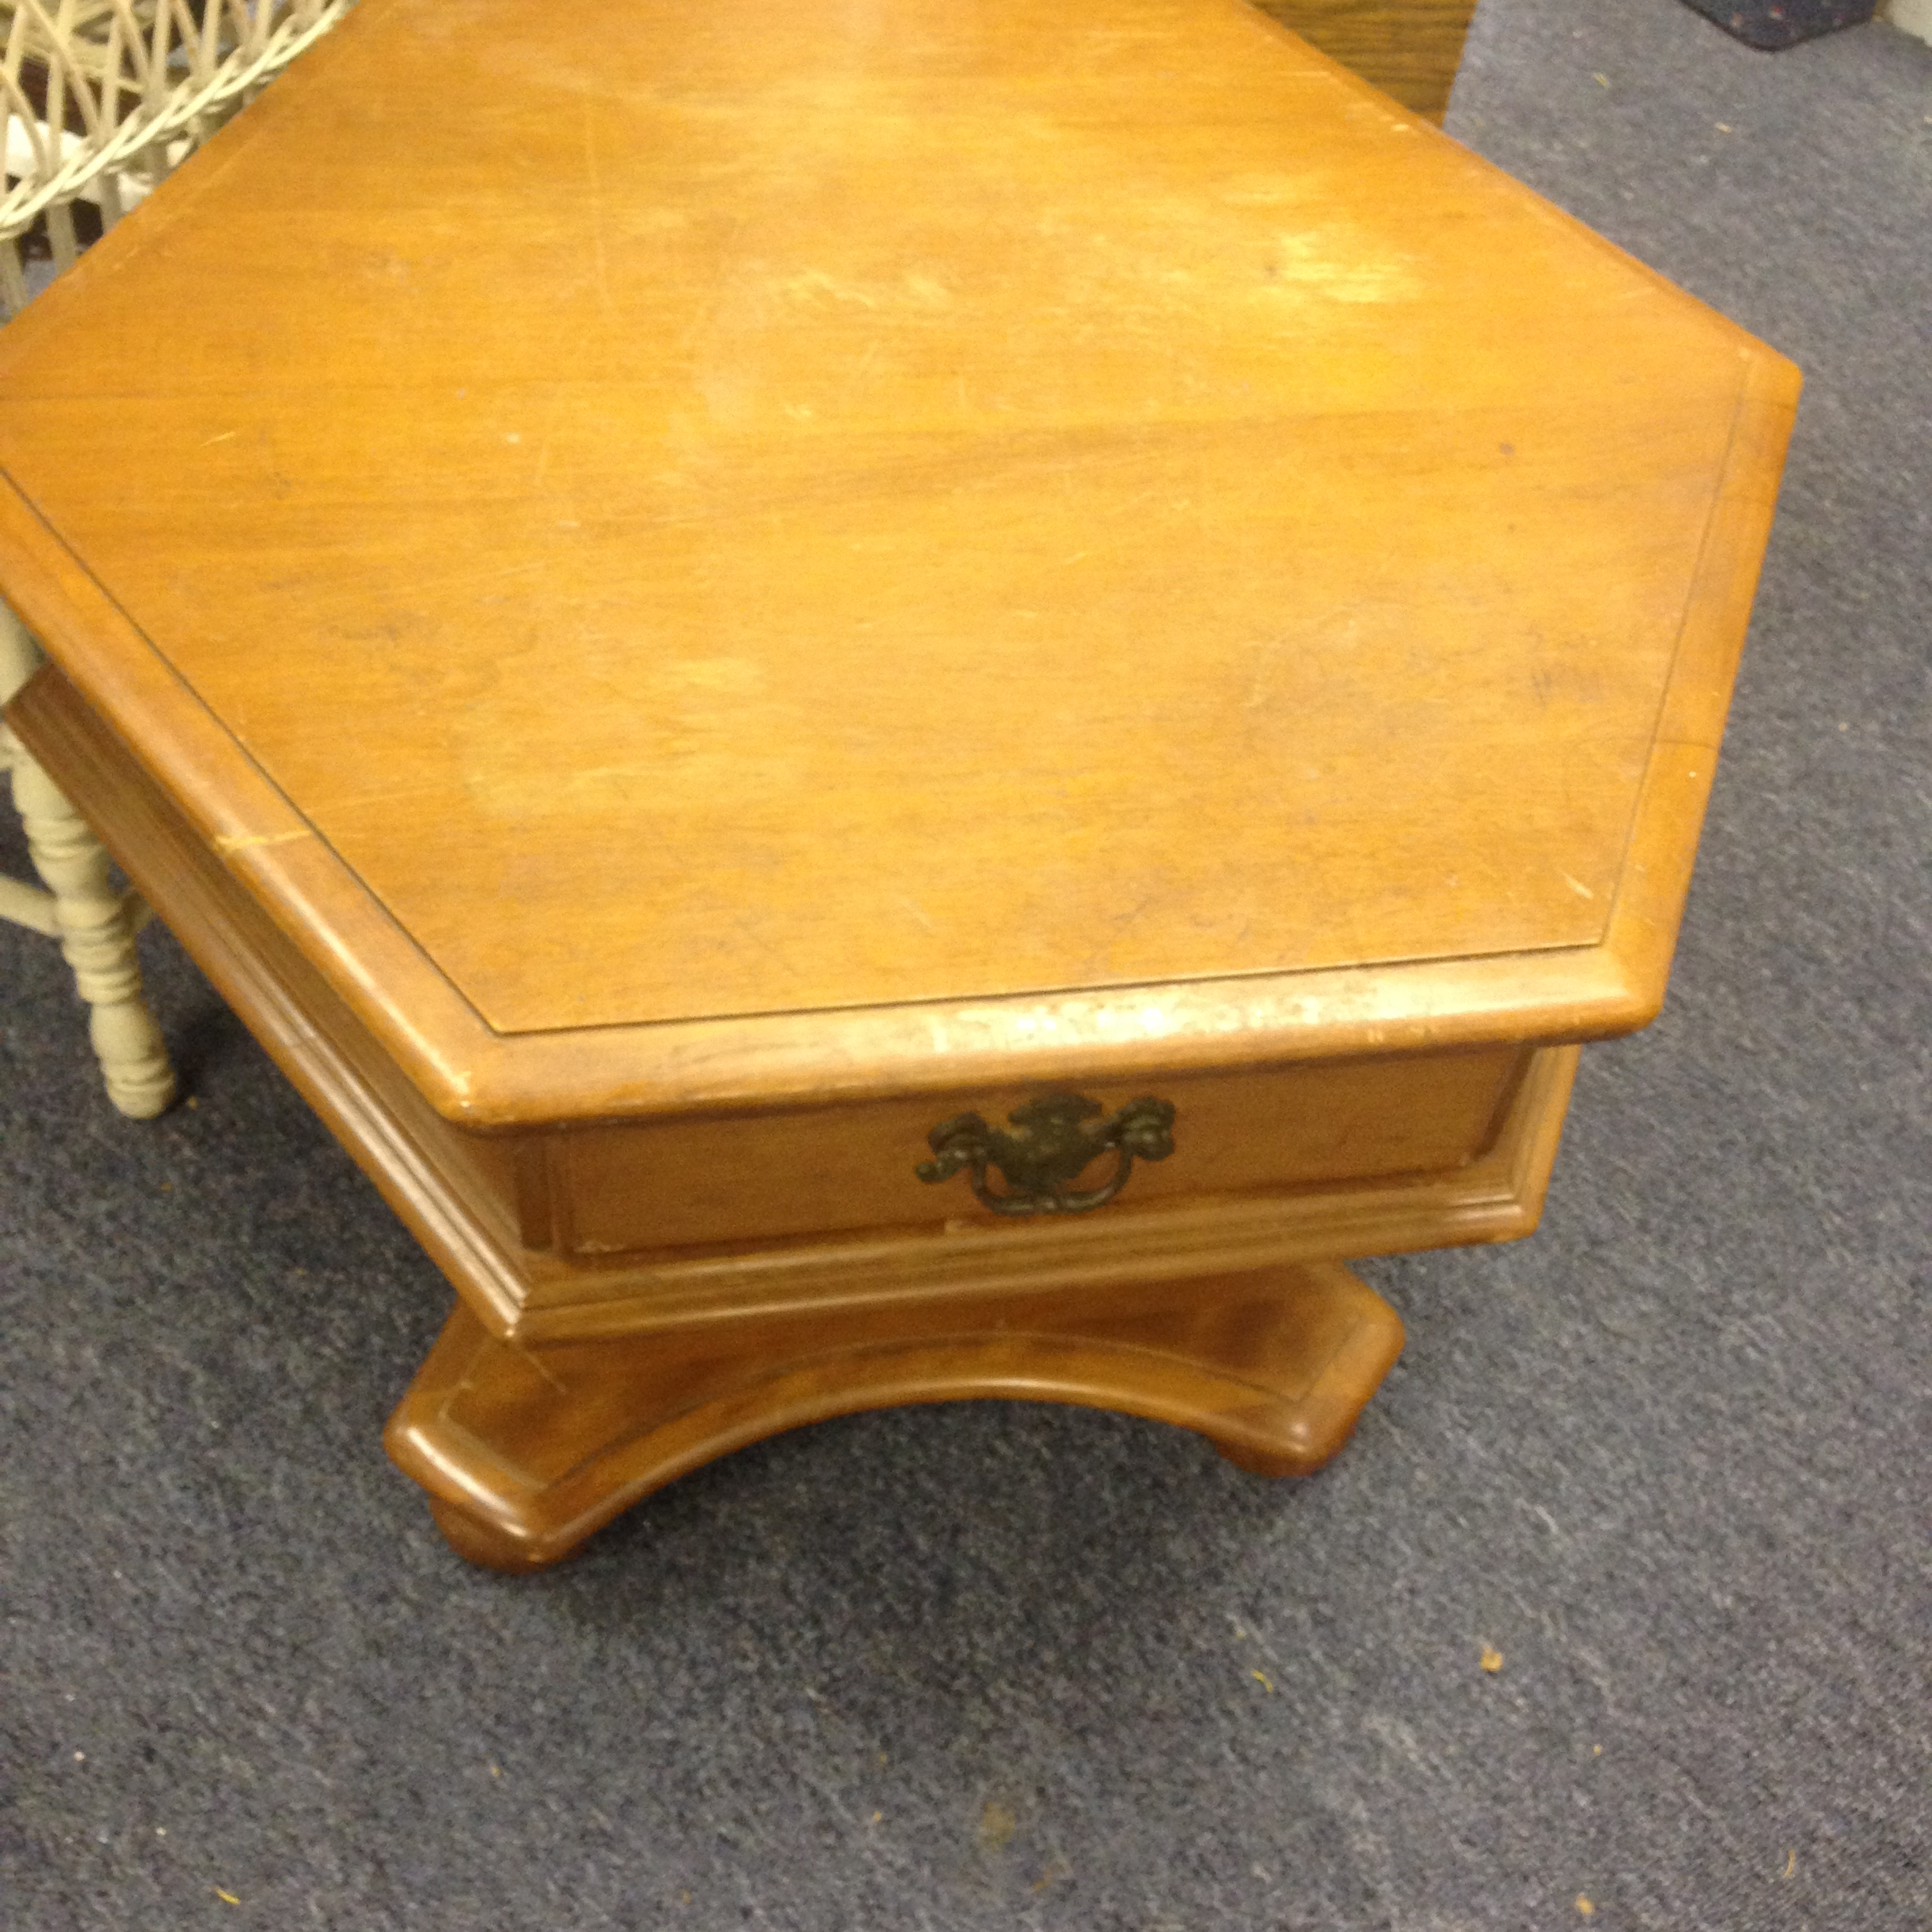 SOLD Pedestal Style Ethan Allen Coffee Table – A Great Project